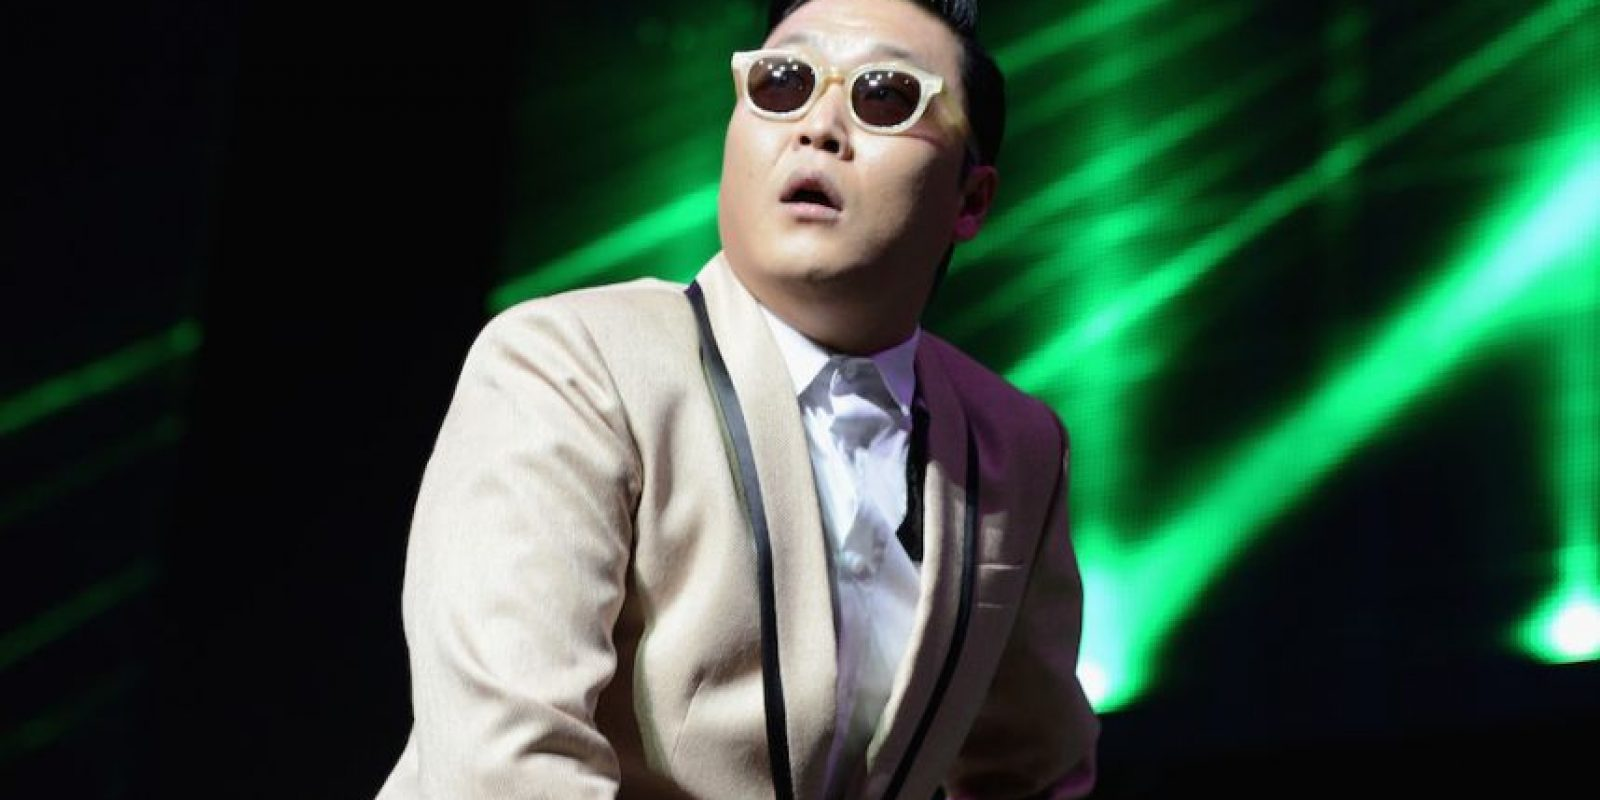 Psy, cantante surcoreano. Foto: Getty Images